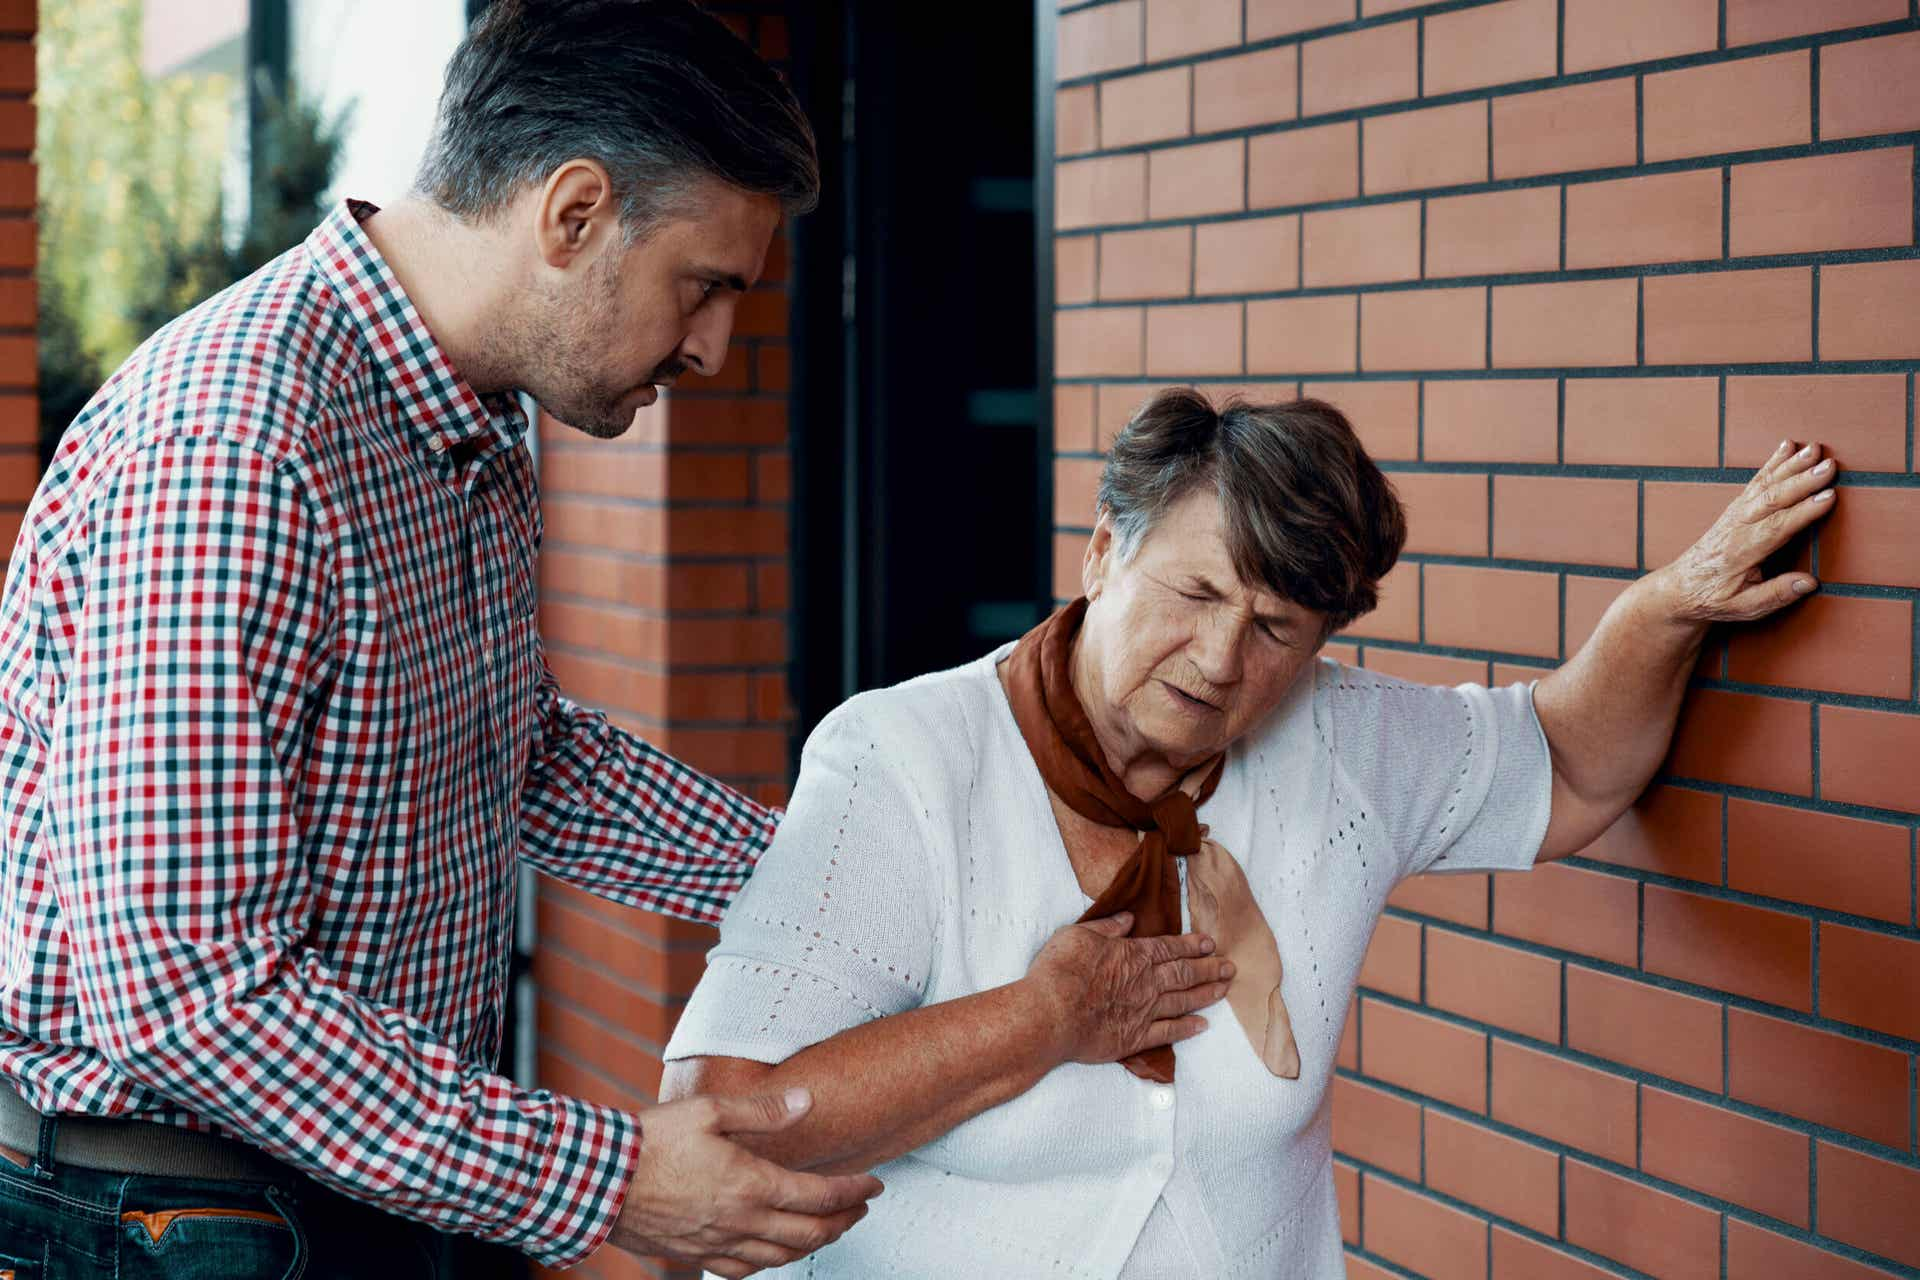 A man assisting an elderly woman who's not feeling well.